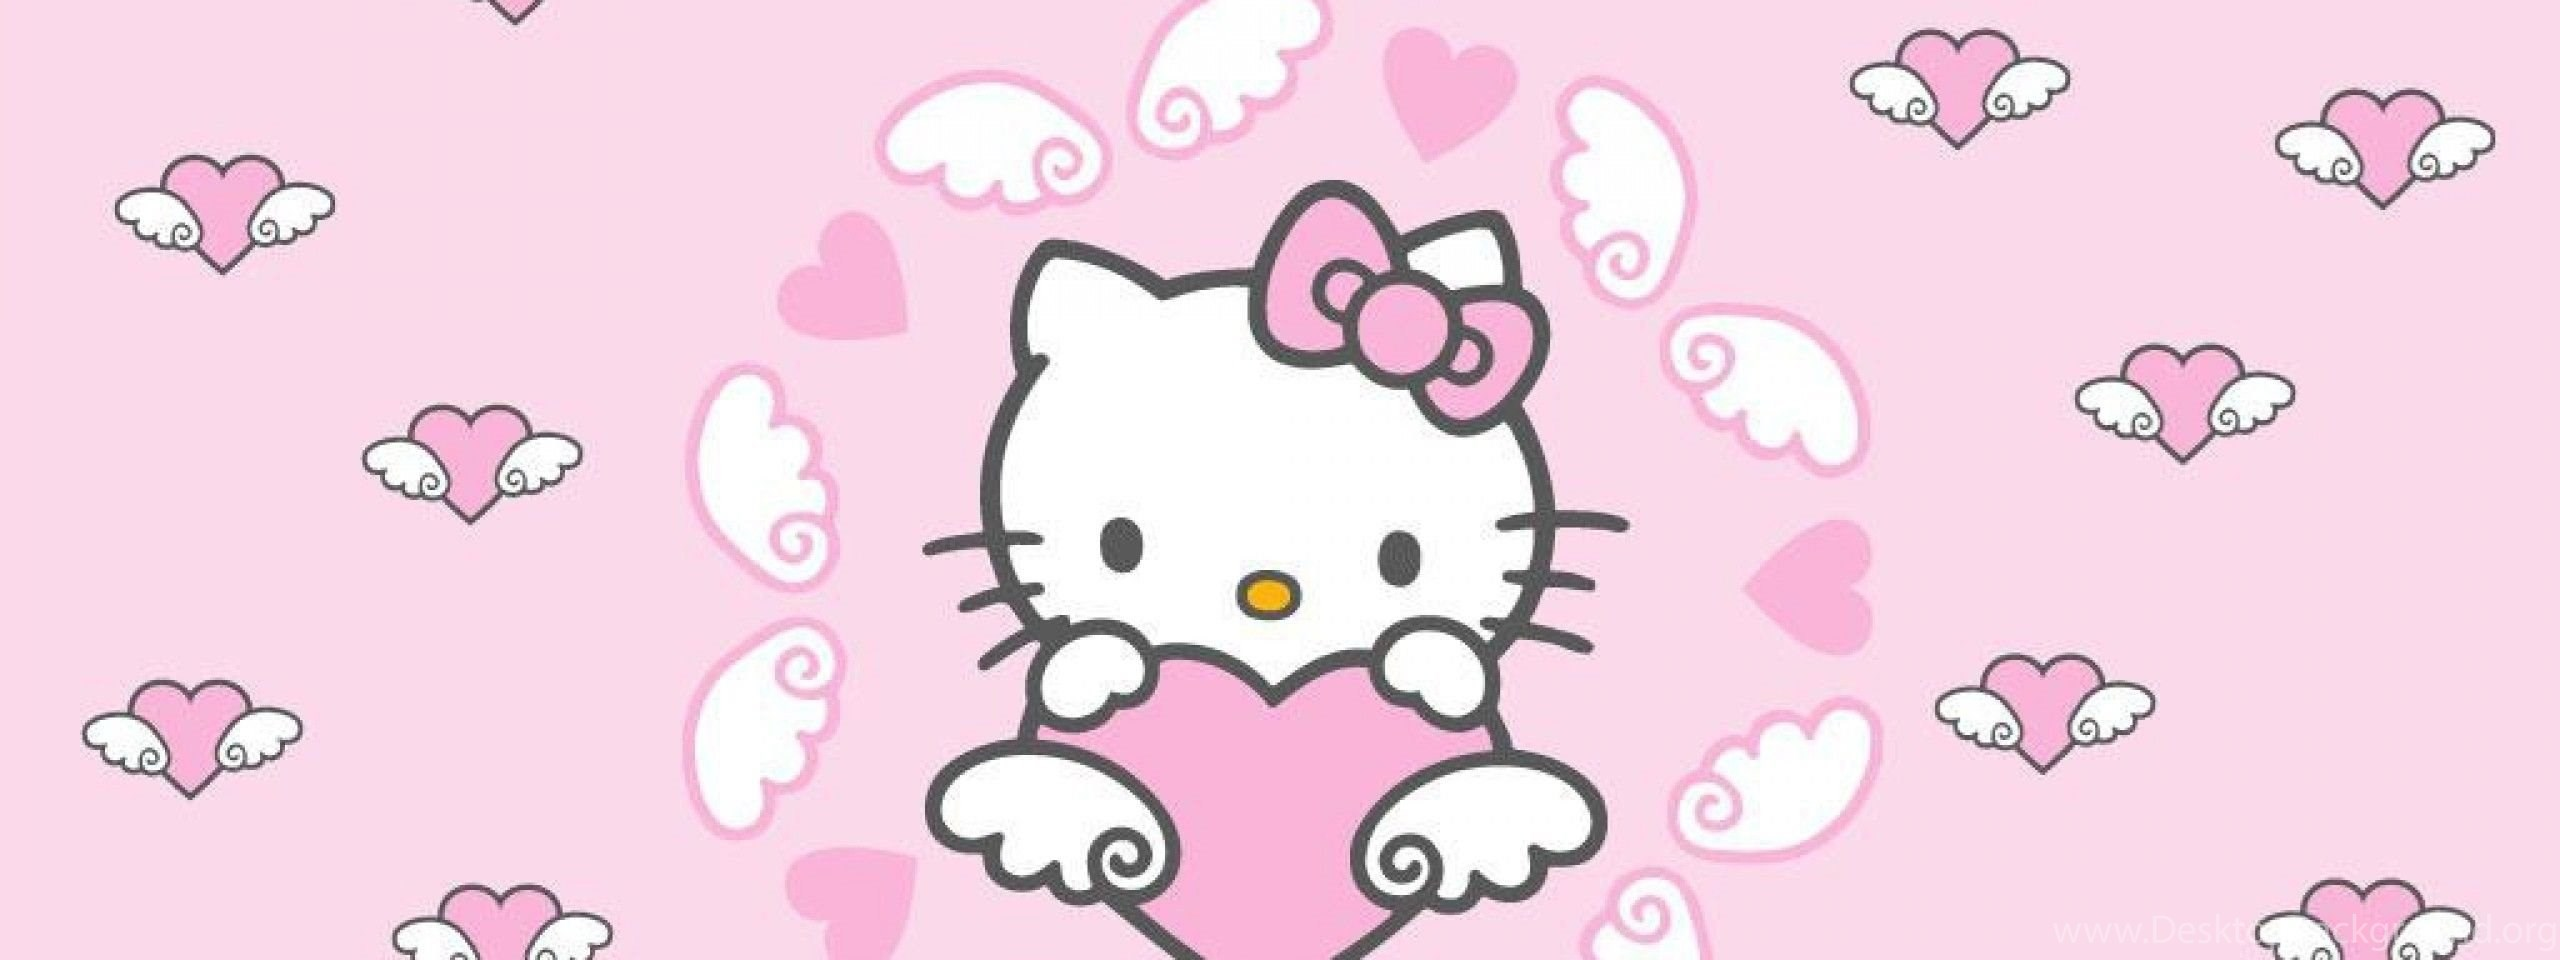 Good Wallpaper Home Screen Hello Kitty - 361483_photos-hello-kitty-with-bow-cute-wallpapers_2560x1600_h  Snapshot_573199.jpg